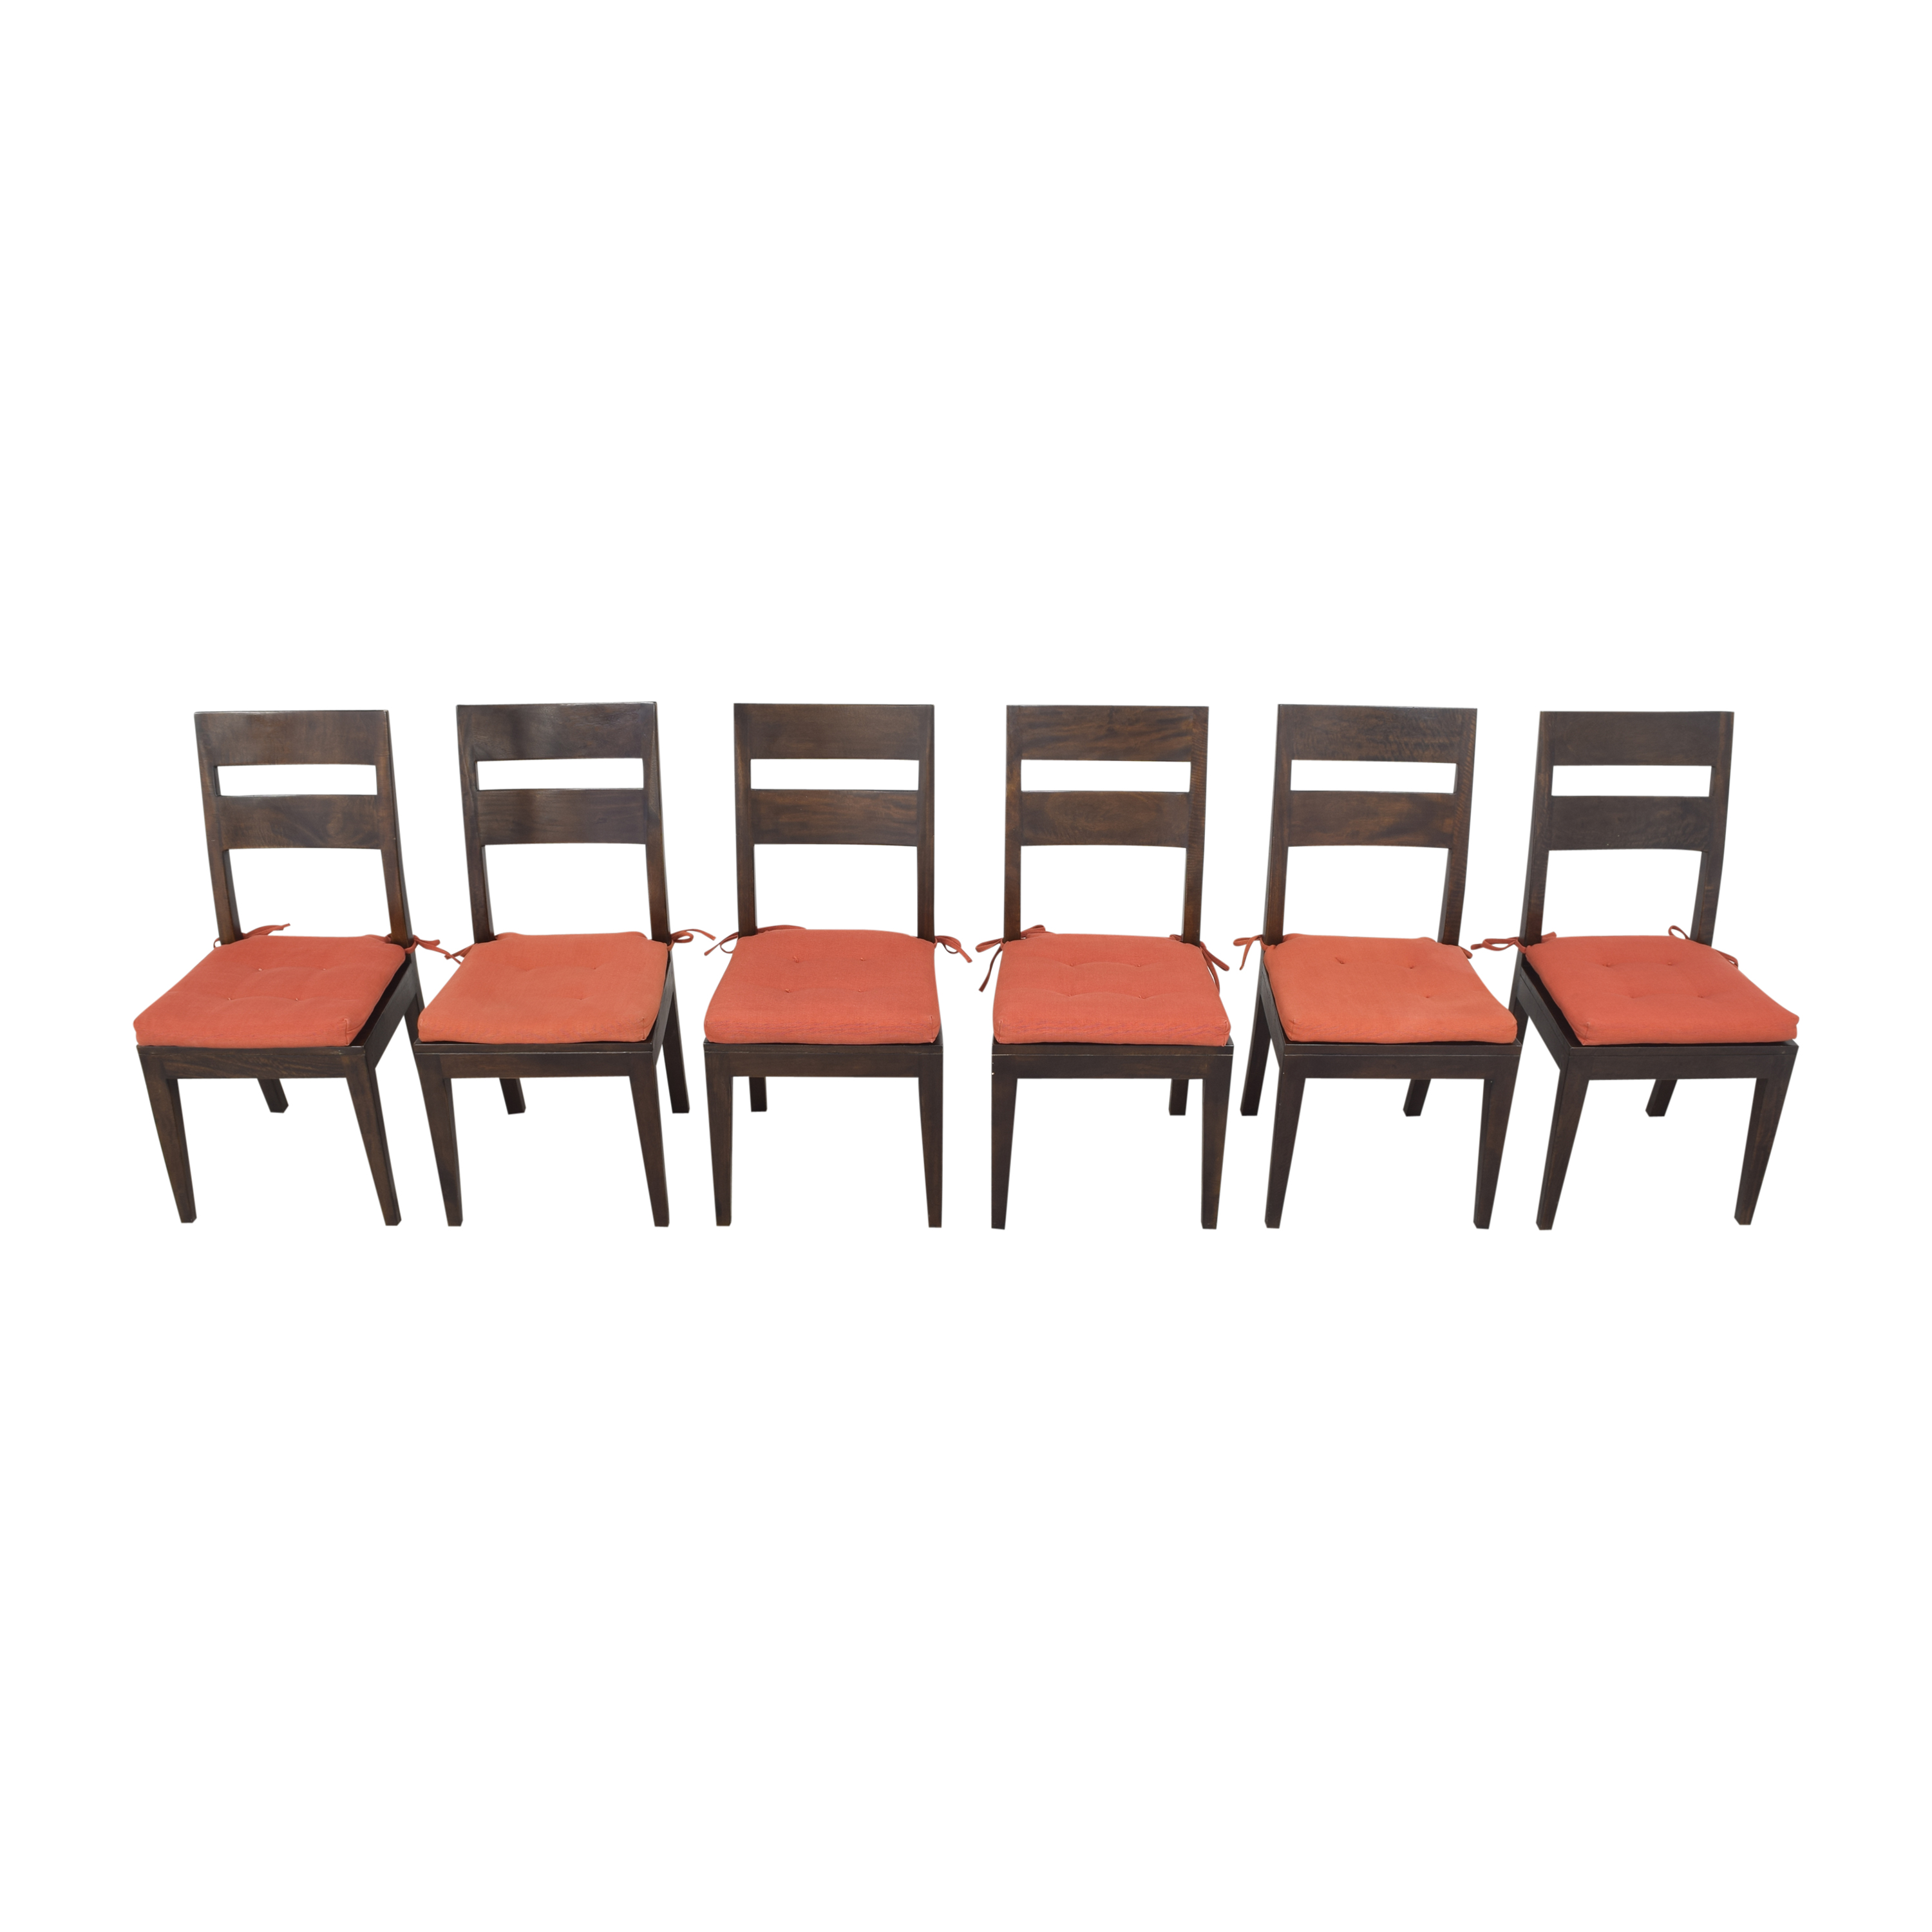 Crate & Barrel Crate & Barrel Basque Dining Side Chairs ma